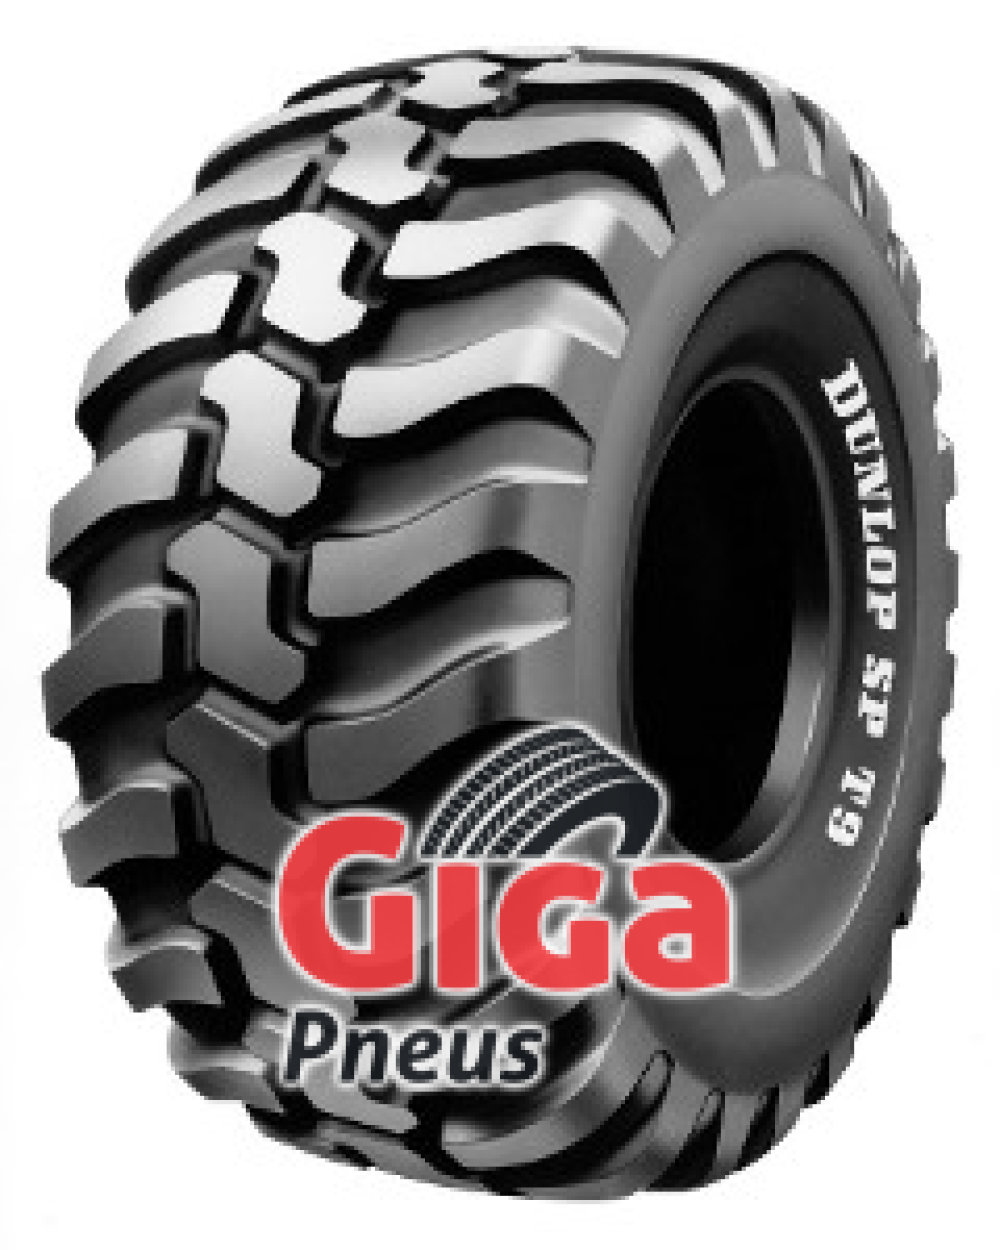 Dunlop SP T9 ( 405/70 R18 153A2 TL Double marquage 141B )